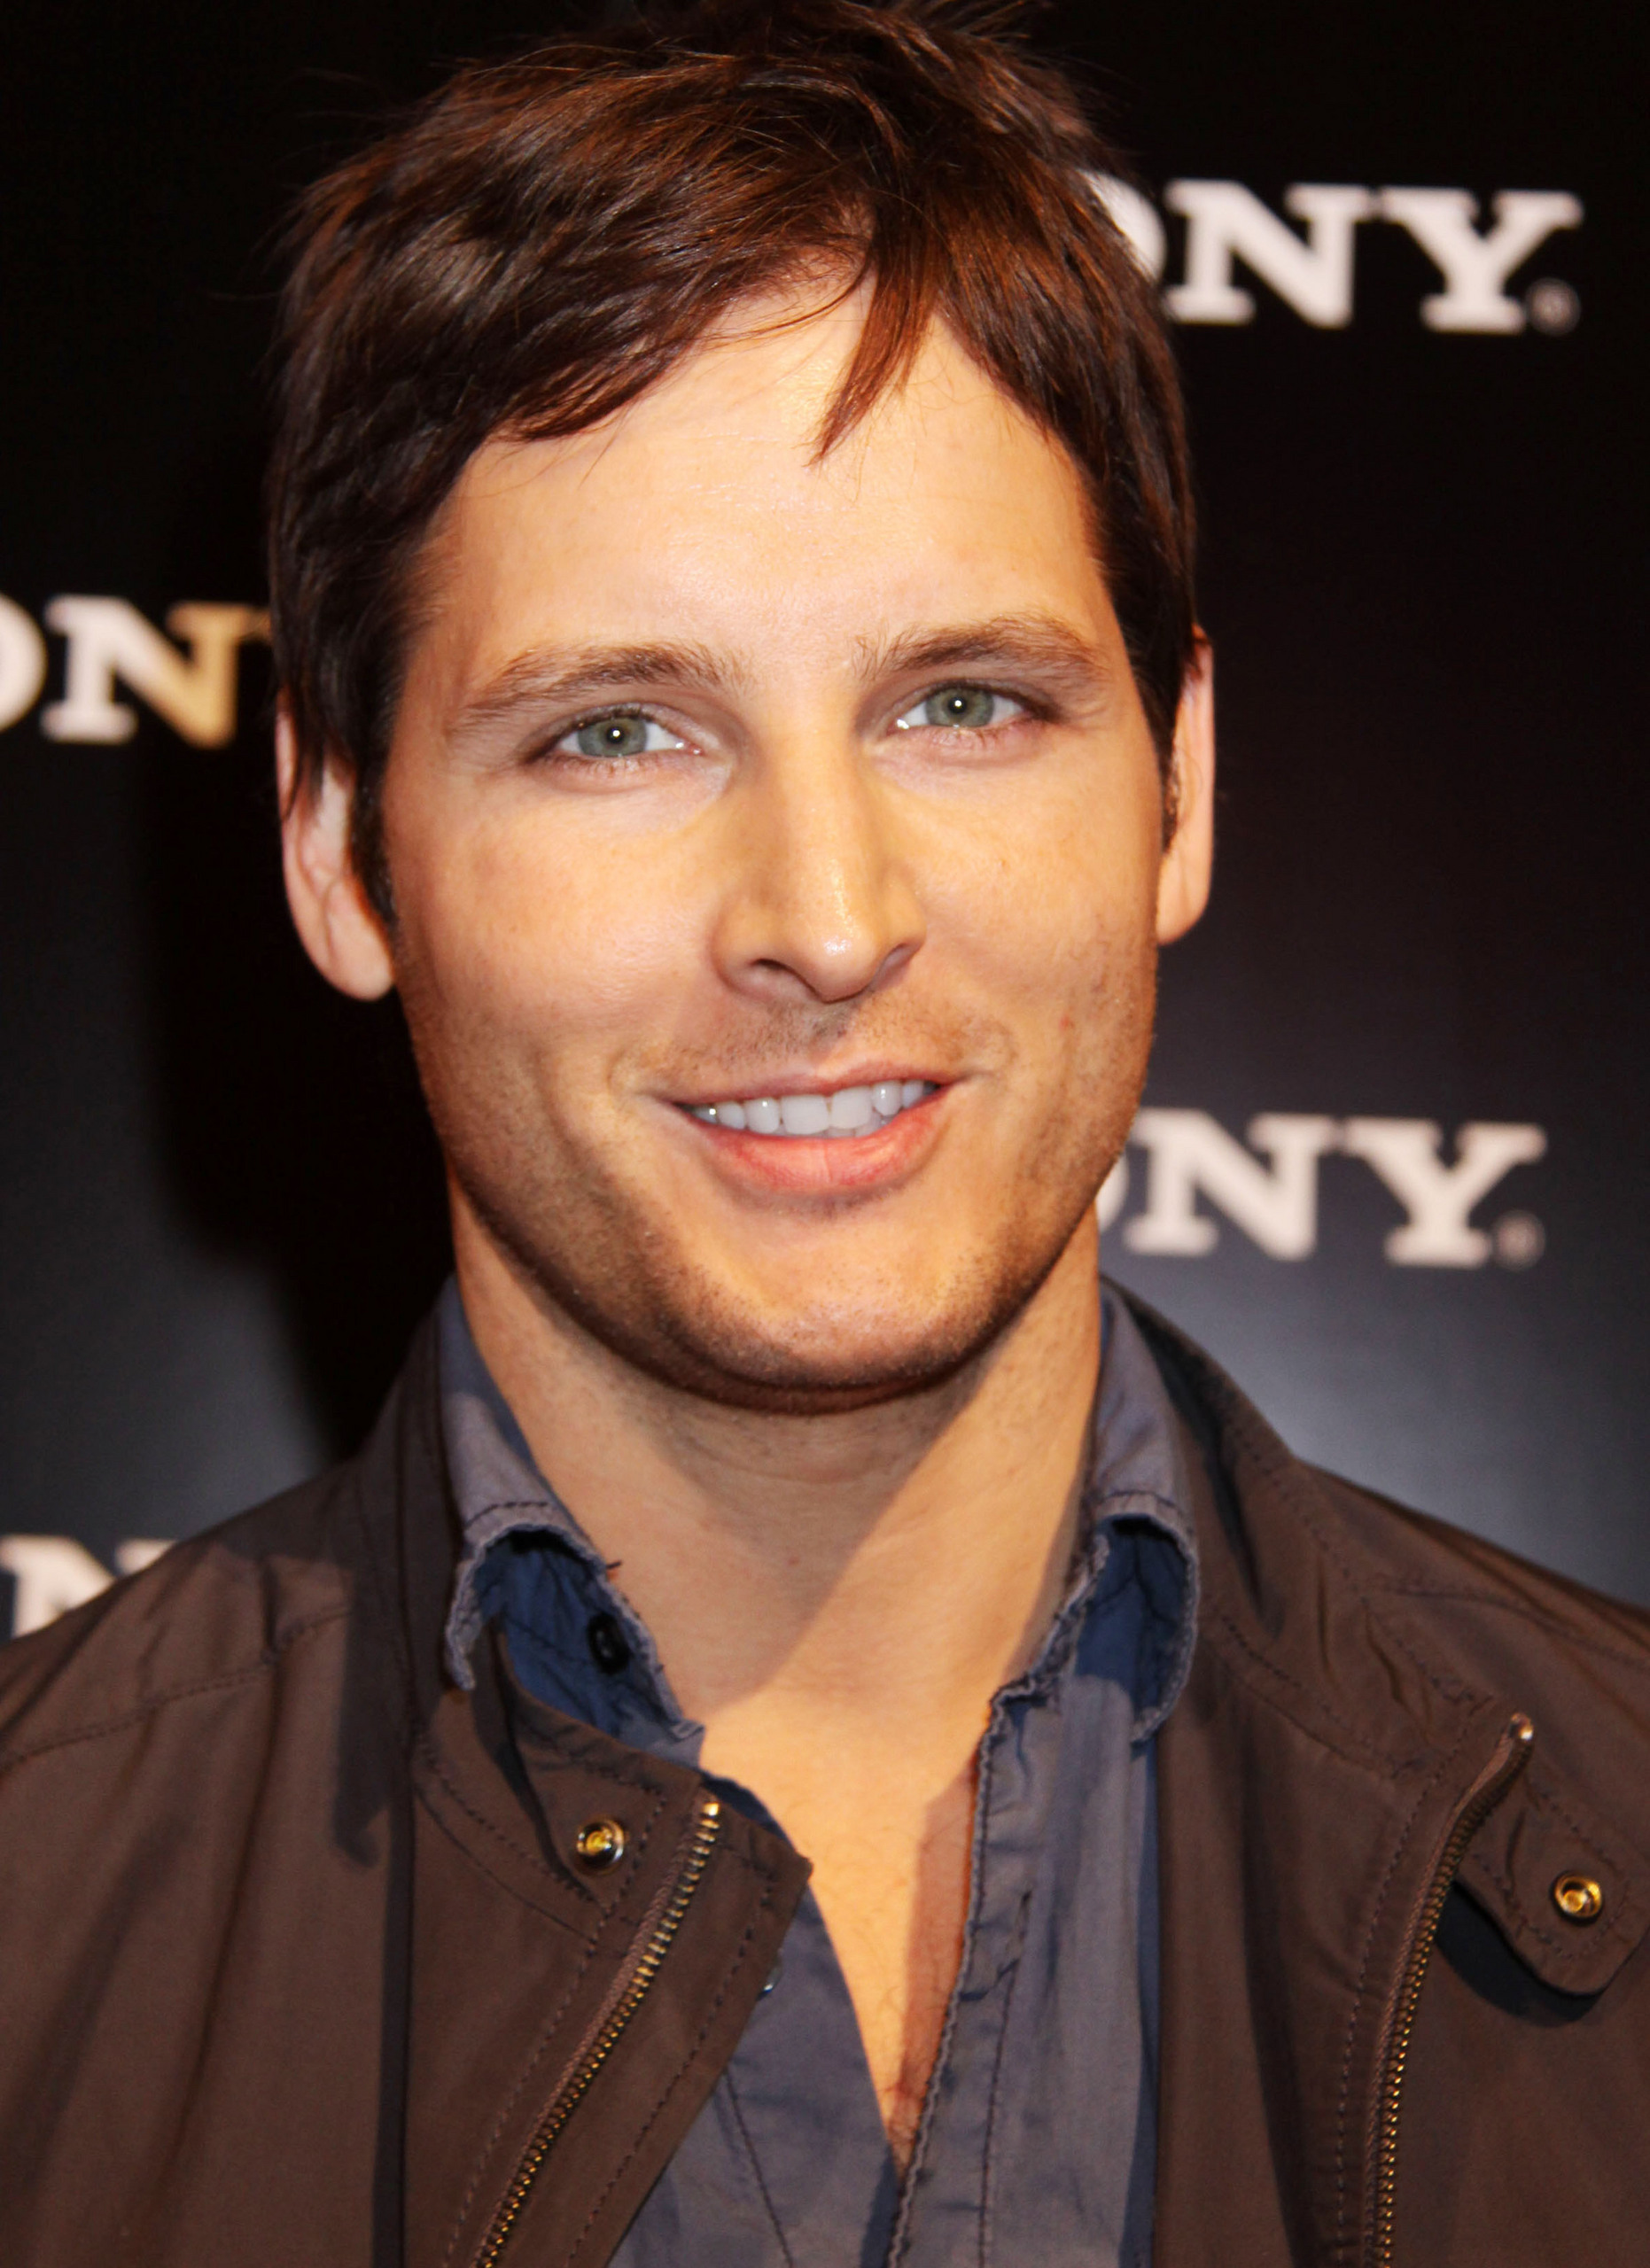 peter facinelli images peter facinelli hd wallpaper and